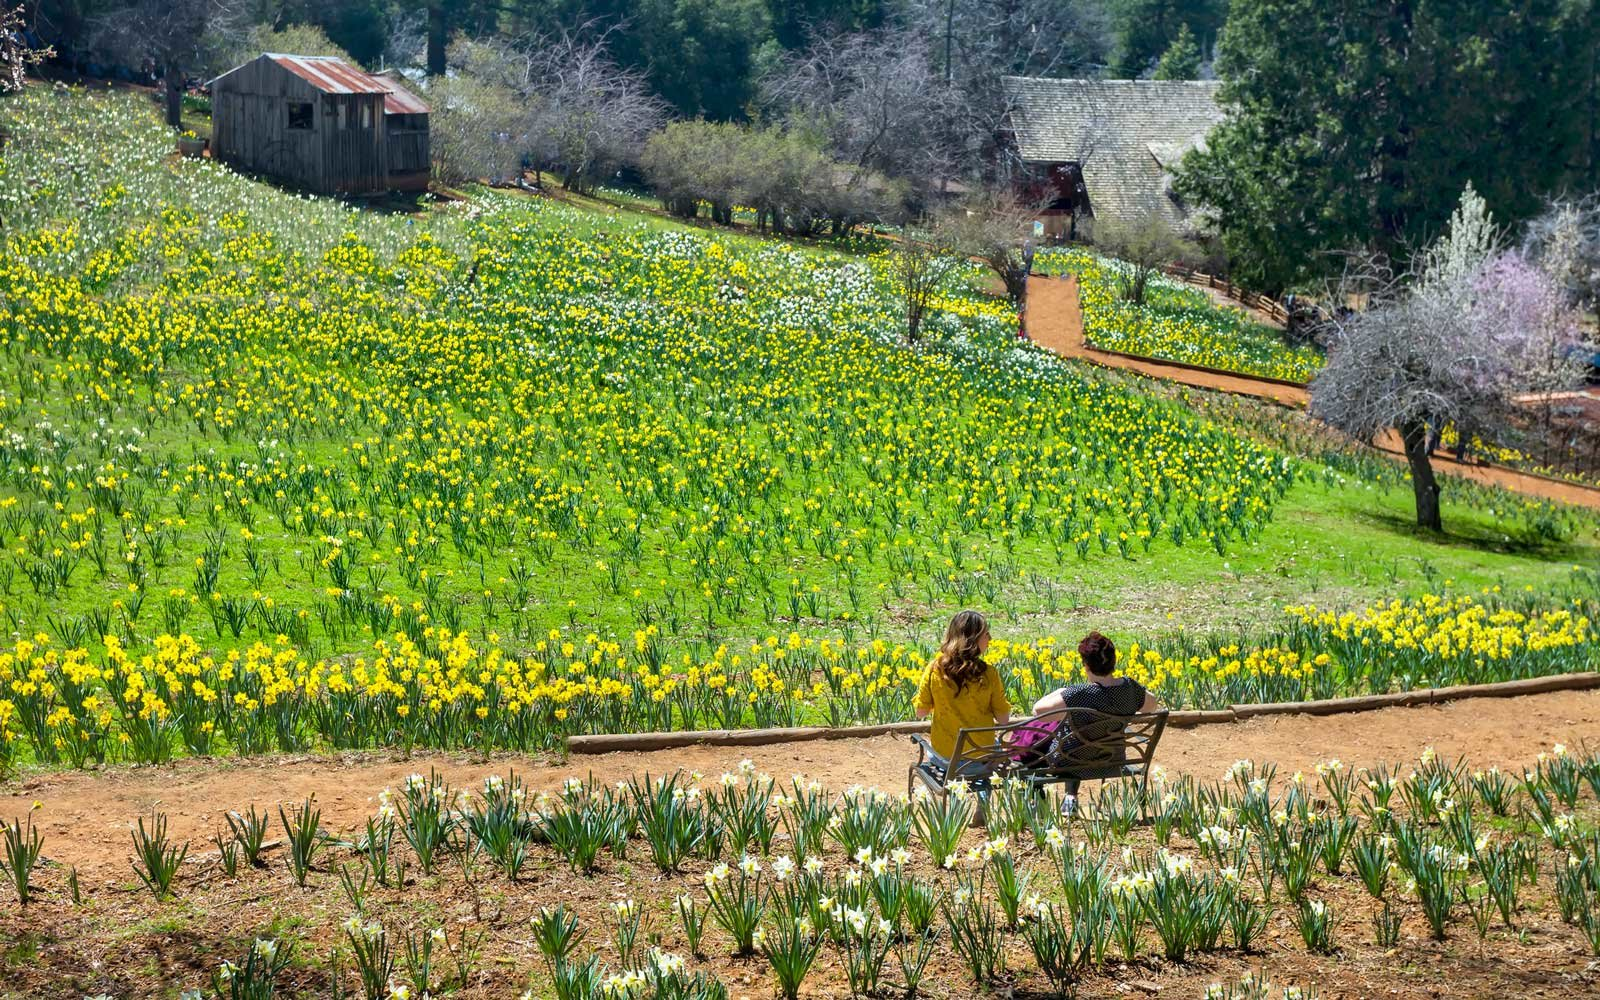 Daffodil Hill is a ranch owned by the McLaughlin family since 1887, and is located in Volcano, CA.